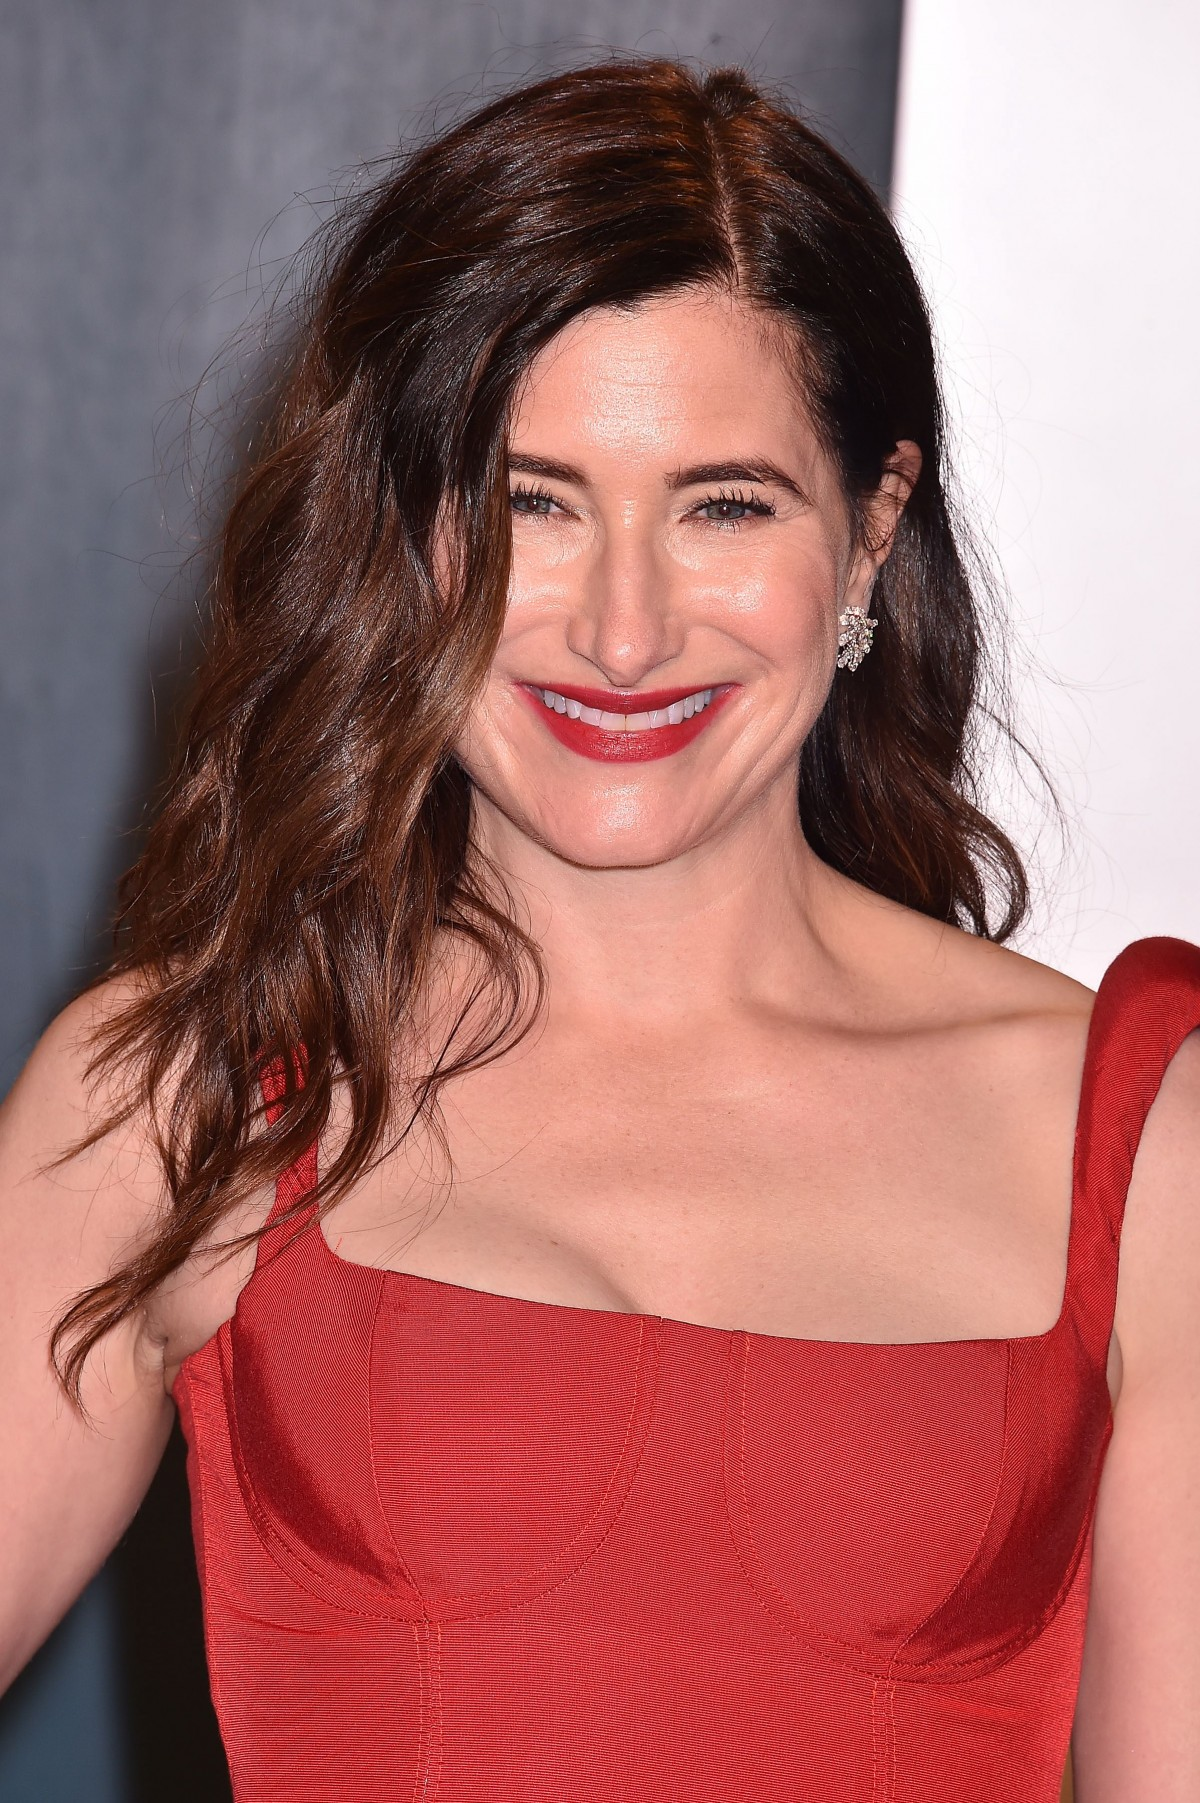 Kathryn Hahn at the 2020 Vanity Fair Oscar Party at Wallis Annenberg Center for the Performing Arts